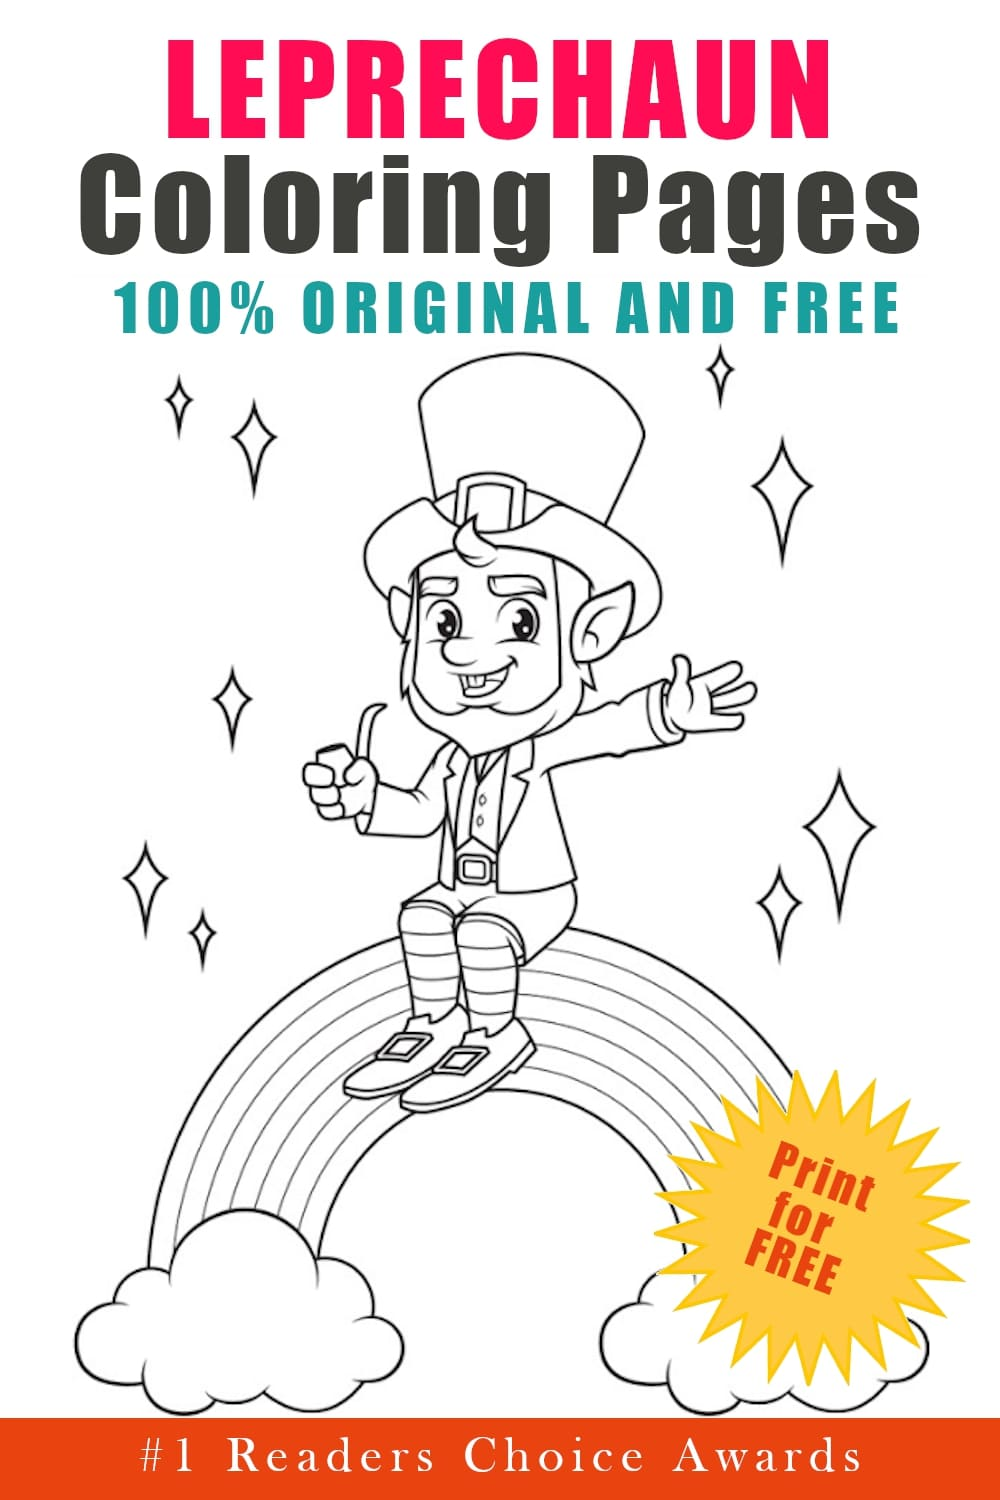 original and free leprechaun coloring pages